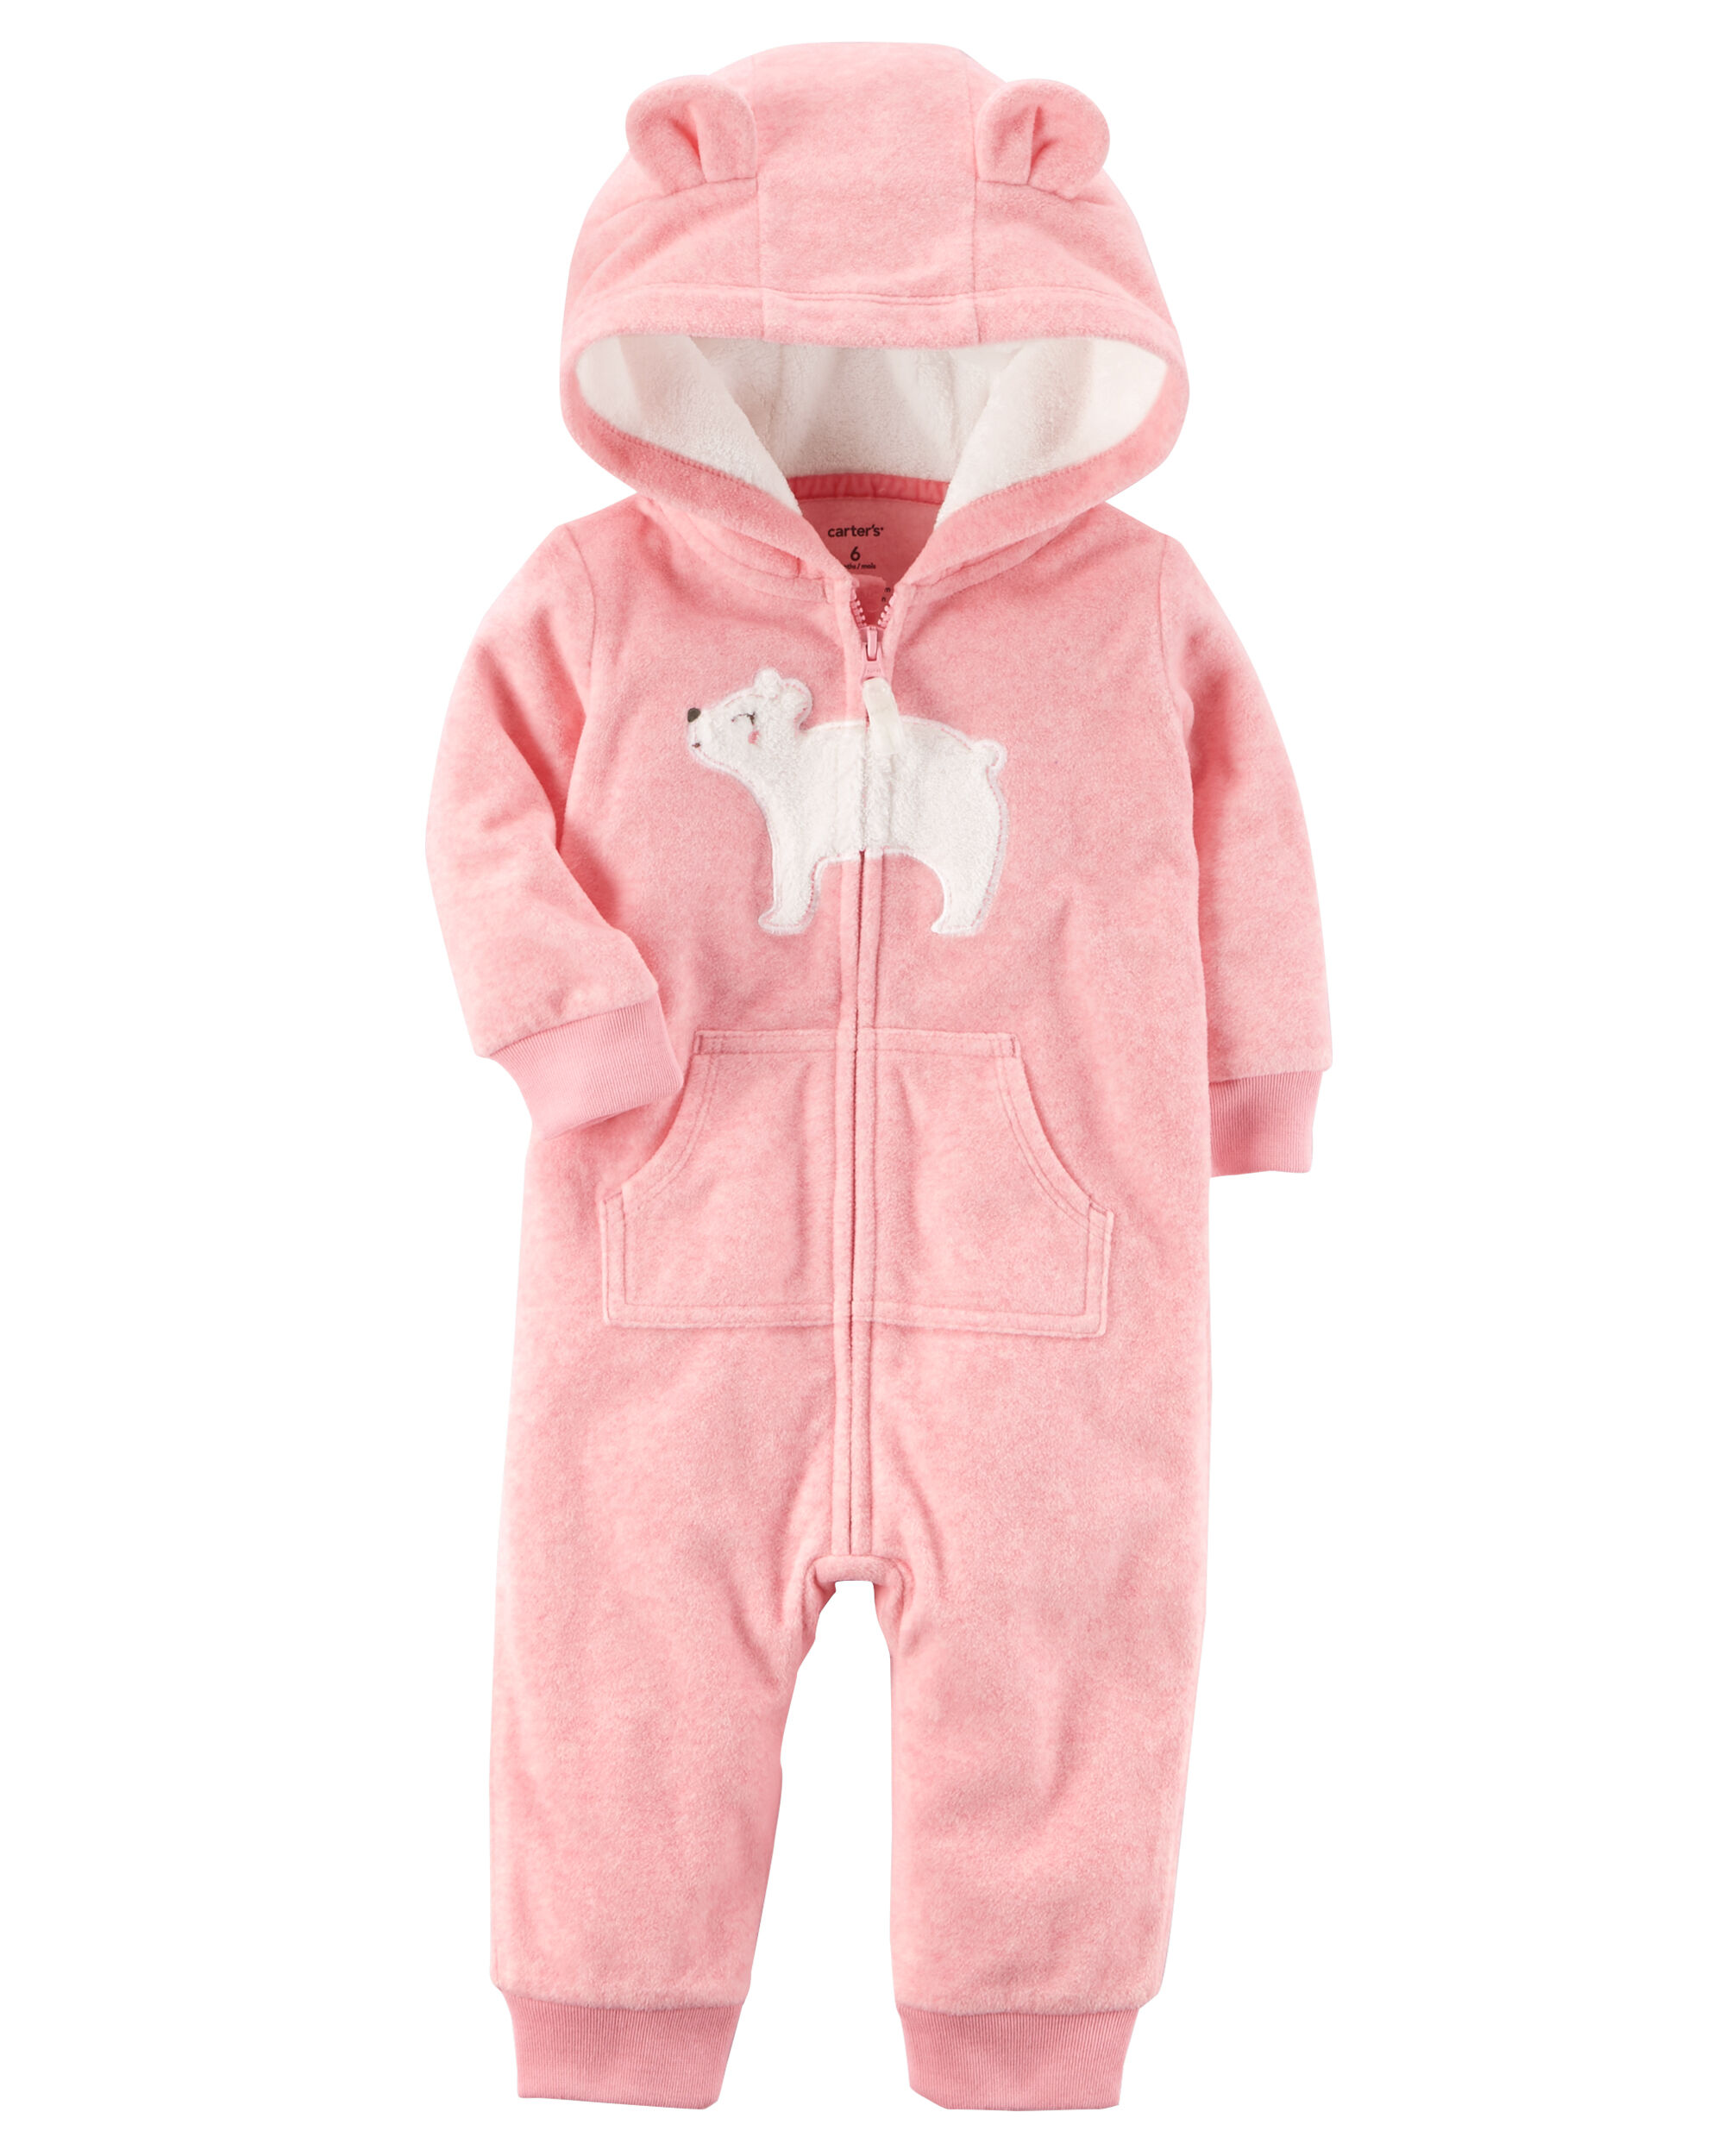 fb38aec4d5a6 Hooded Fleece Jumpsuit. Loading zoom